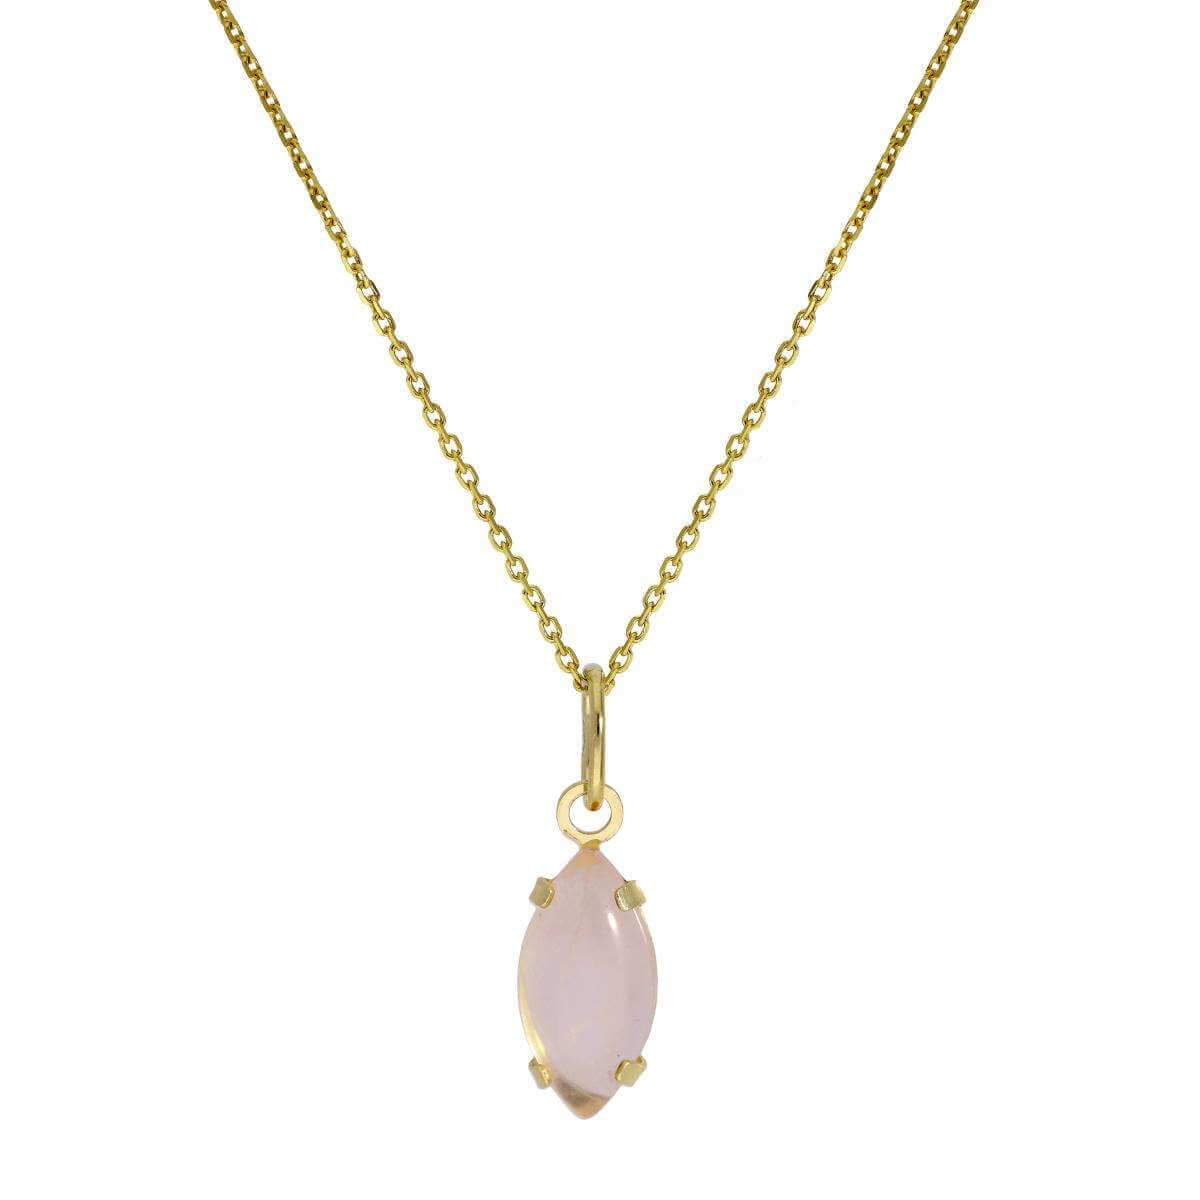 9ct Gold & Rose Quartz CZ Crystal Oval Pendant Necklace 16 - 20 Inches